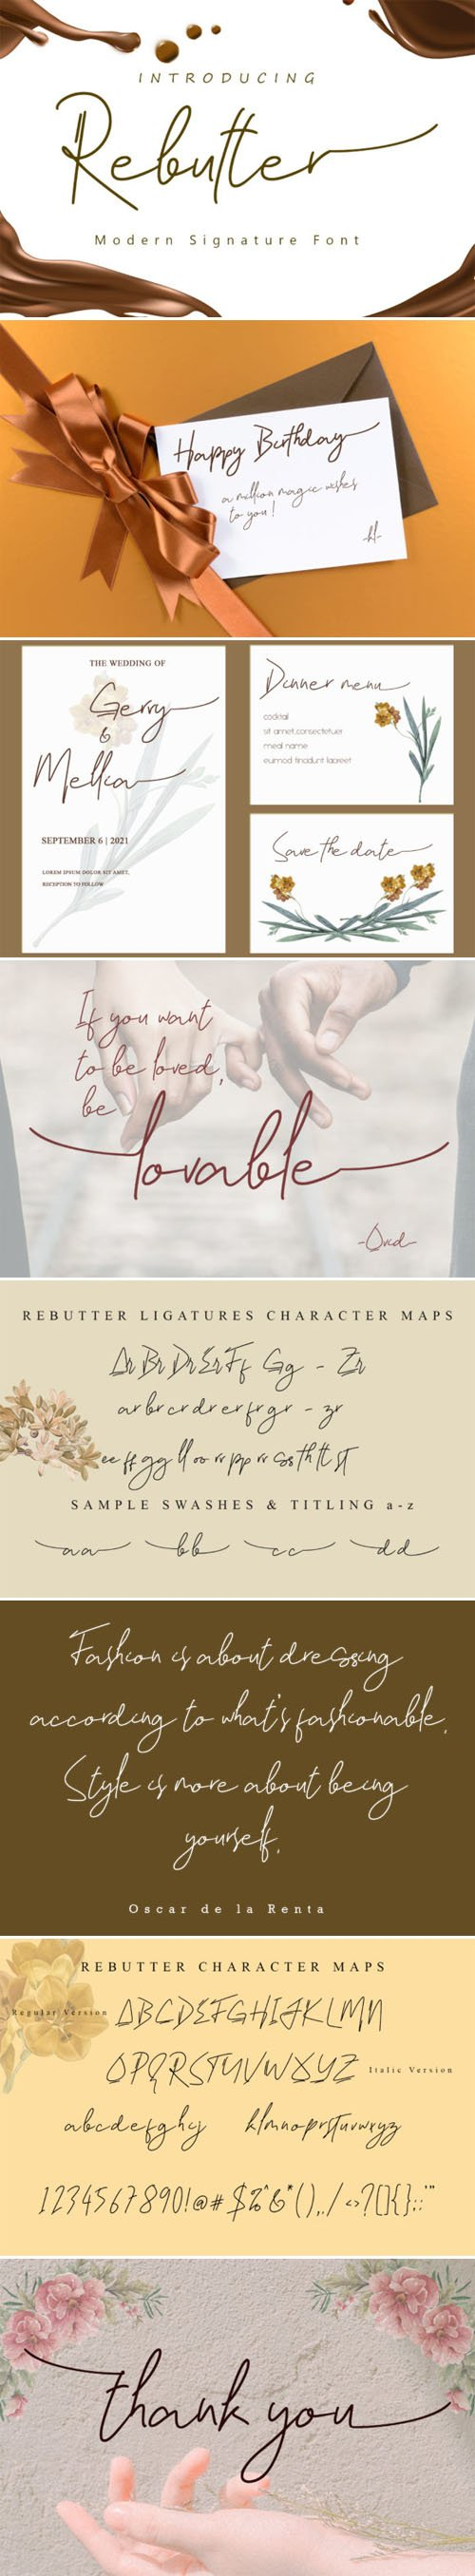 Rebutter - Fashionable Signature Font [2-Weights]